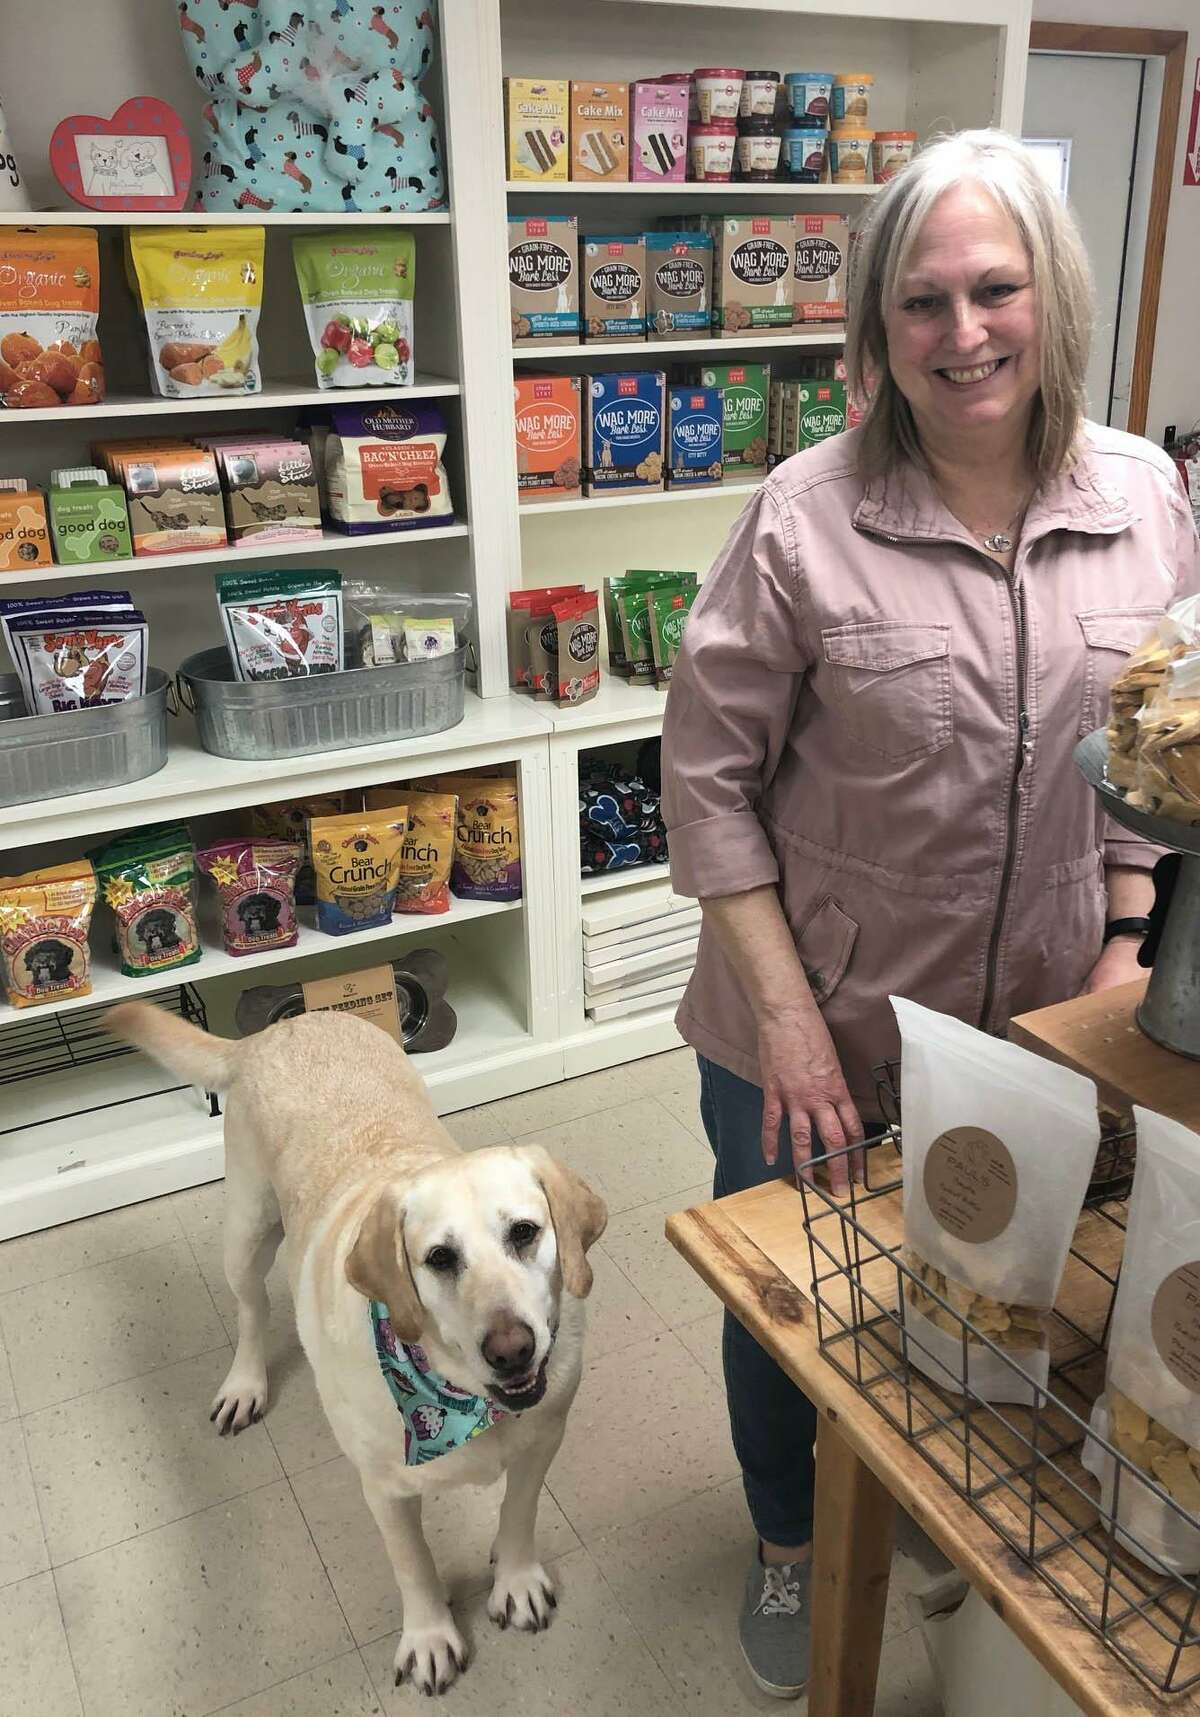 Debbie Bauman, owner of The Barkery Boo'tique in New Milford has moved the business from Bank Street to 92 Park Lane Road (Route 202). Bauman is shown above with her dog, Daisy, an 8-year-old Yellow Lab, who is the store's